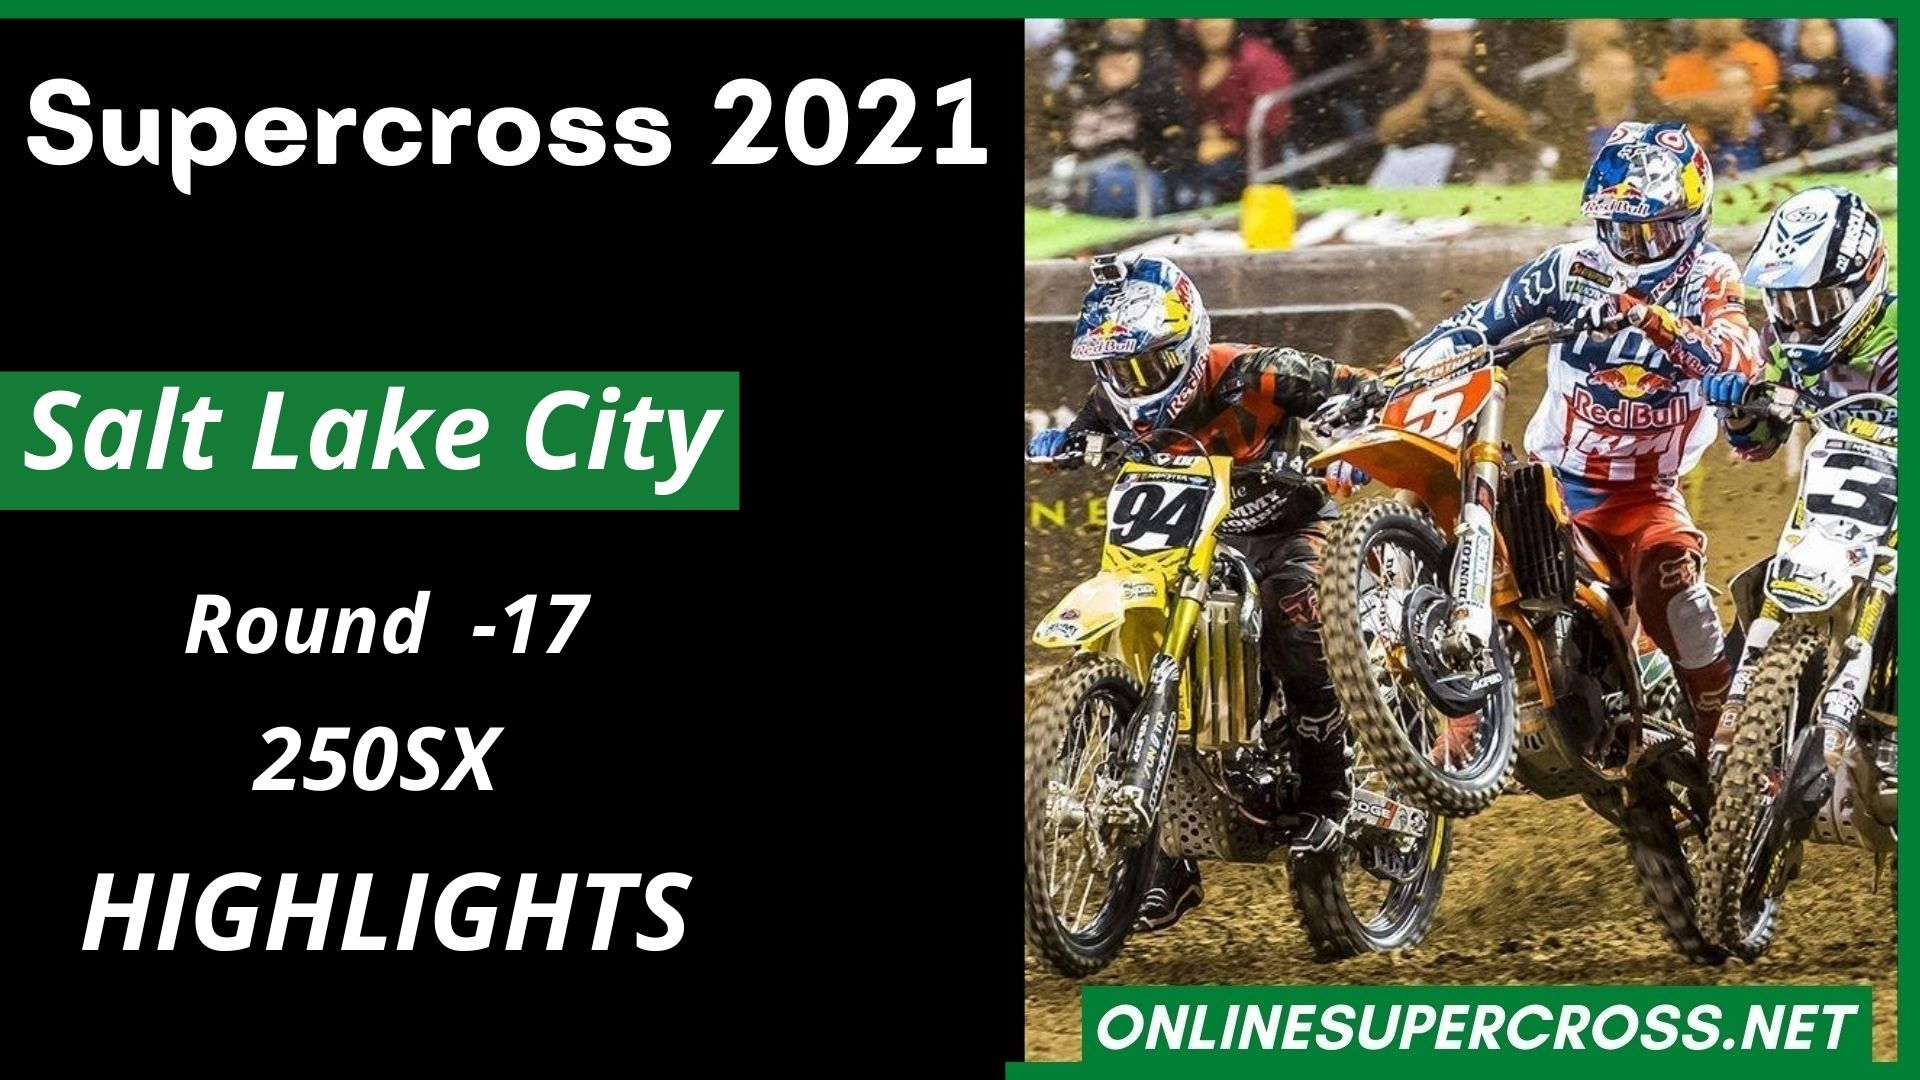 Salt Lake City Round 17 Supercross 250SX Highlights 2021